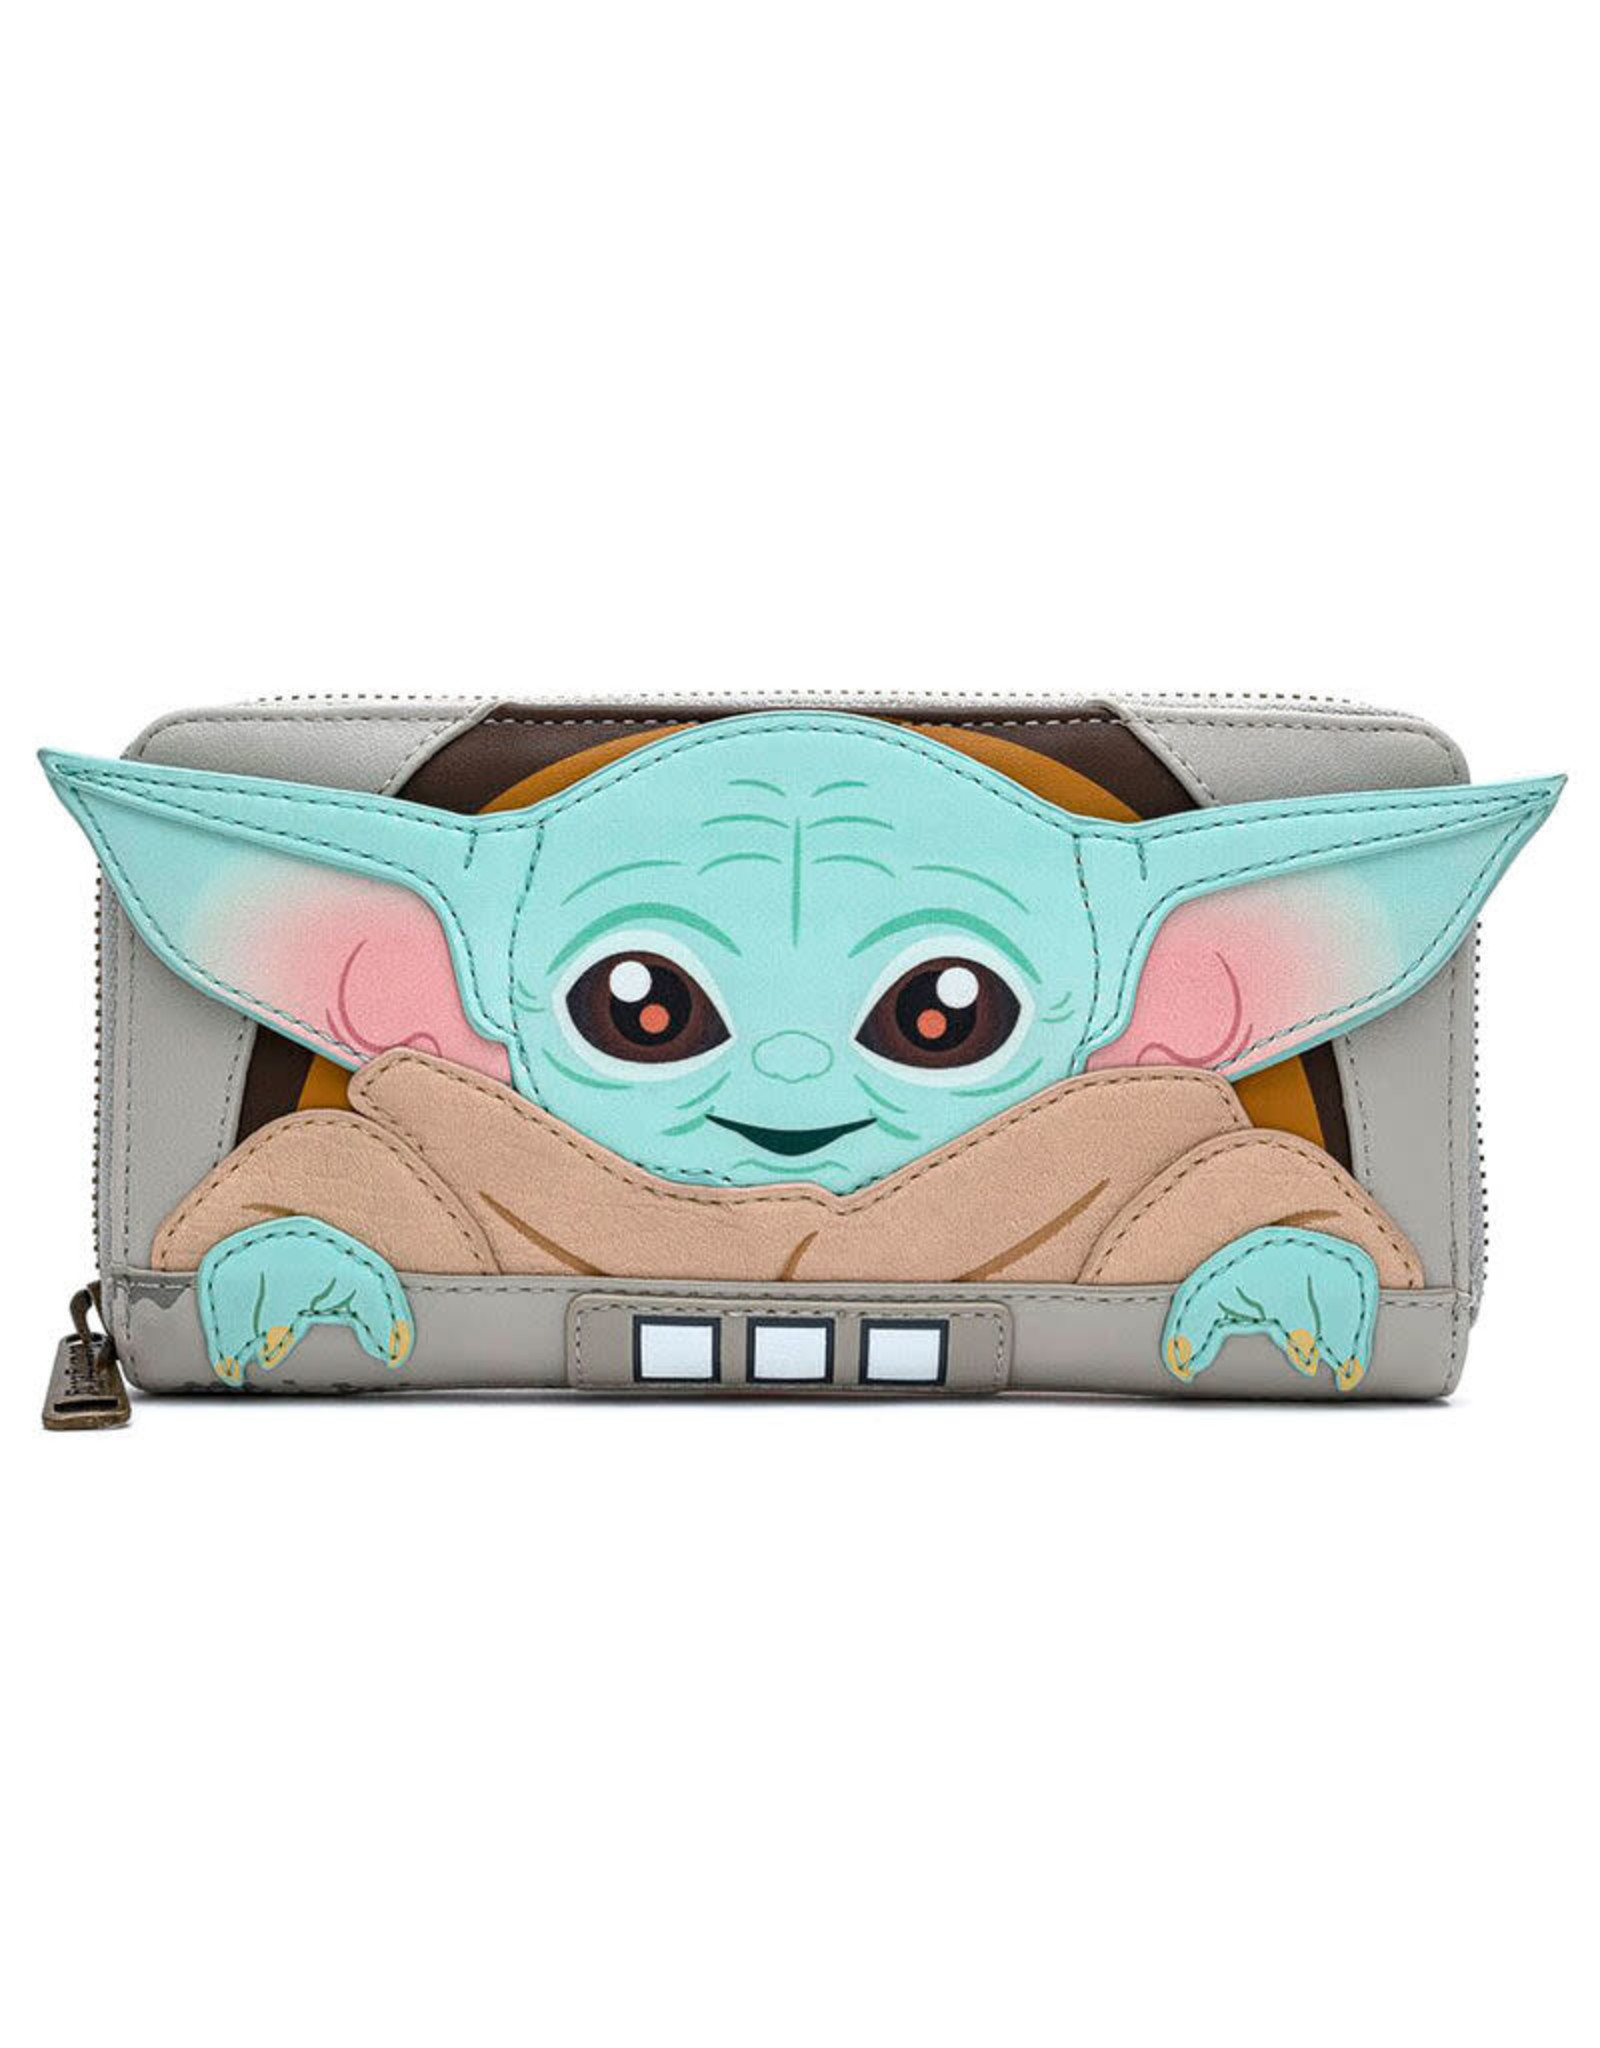 Loungefly STAR WARS Wallet - The Child